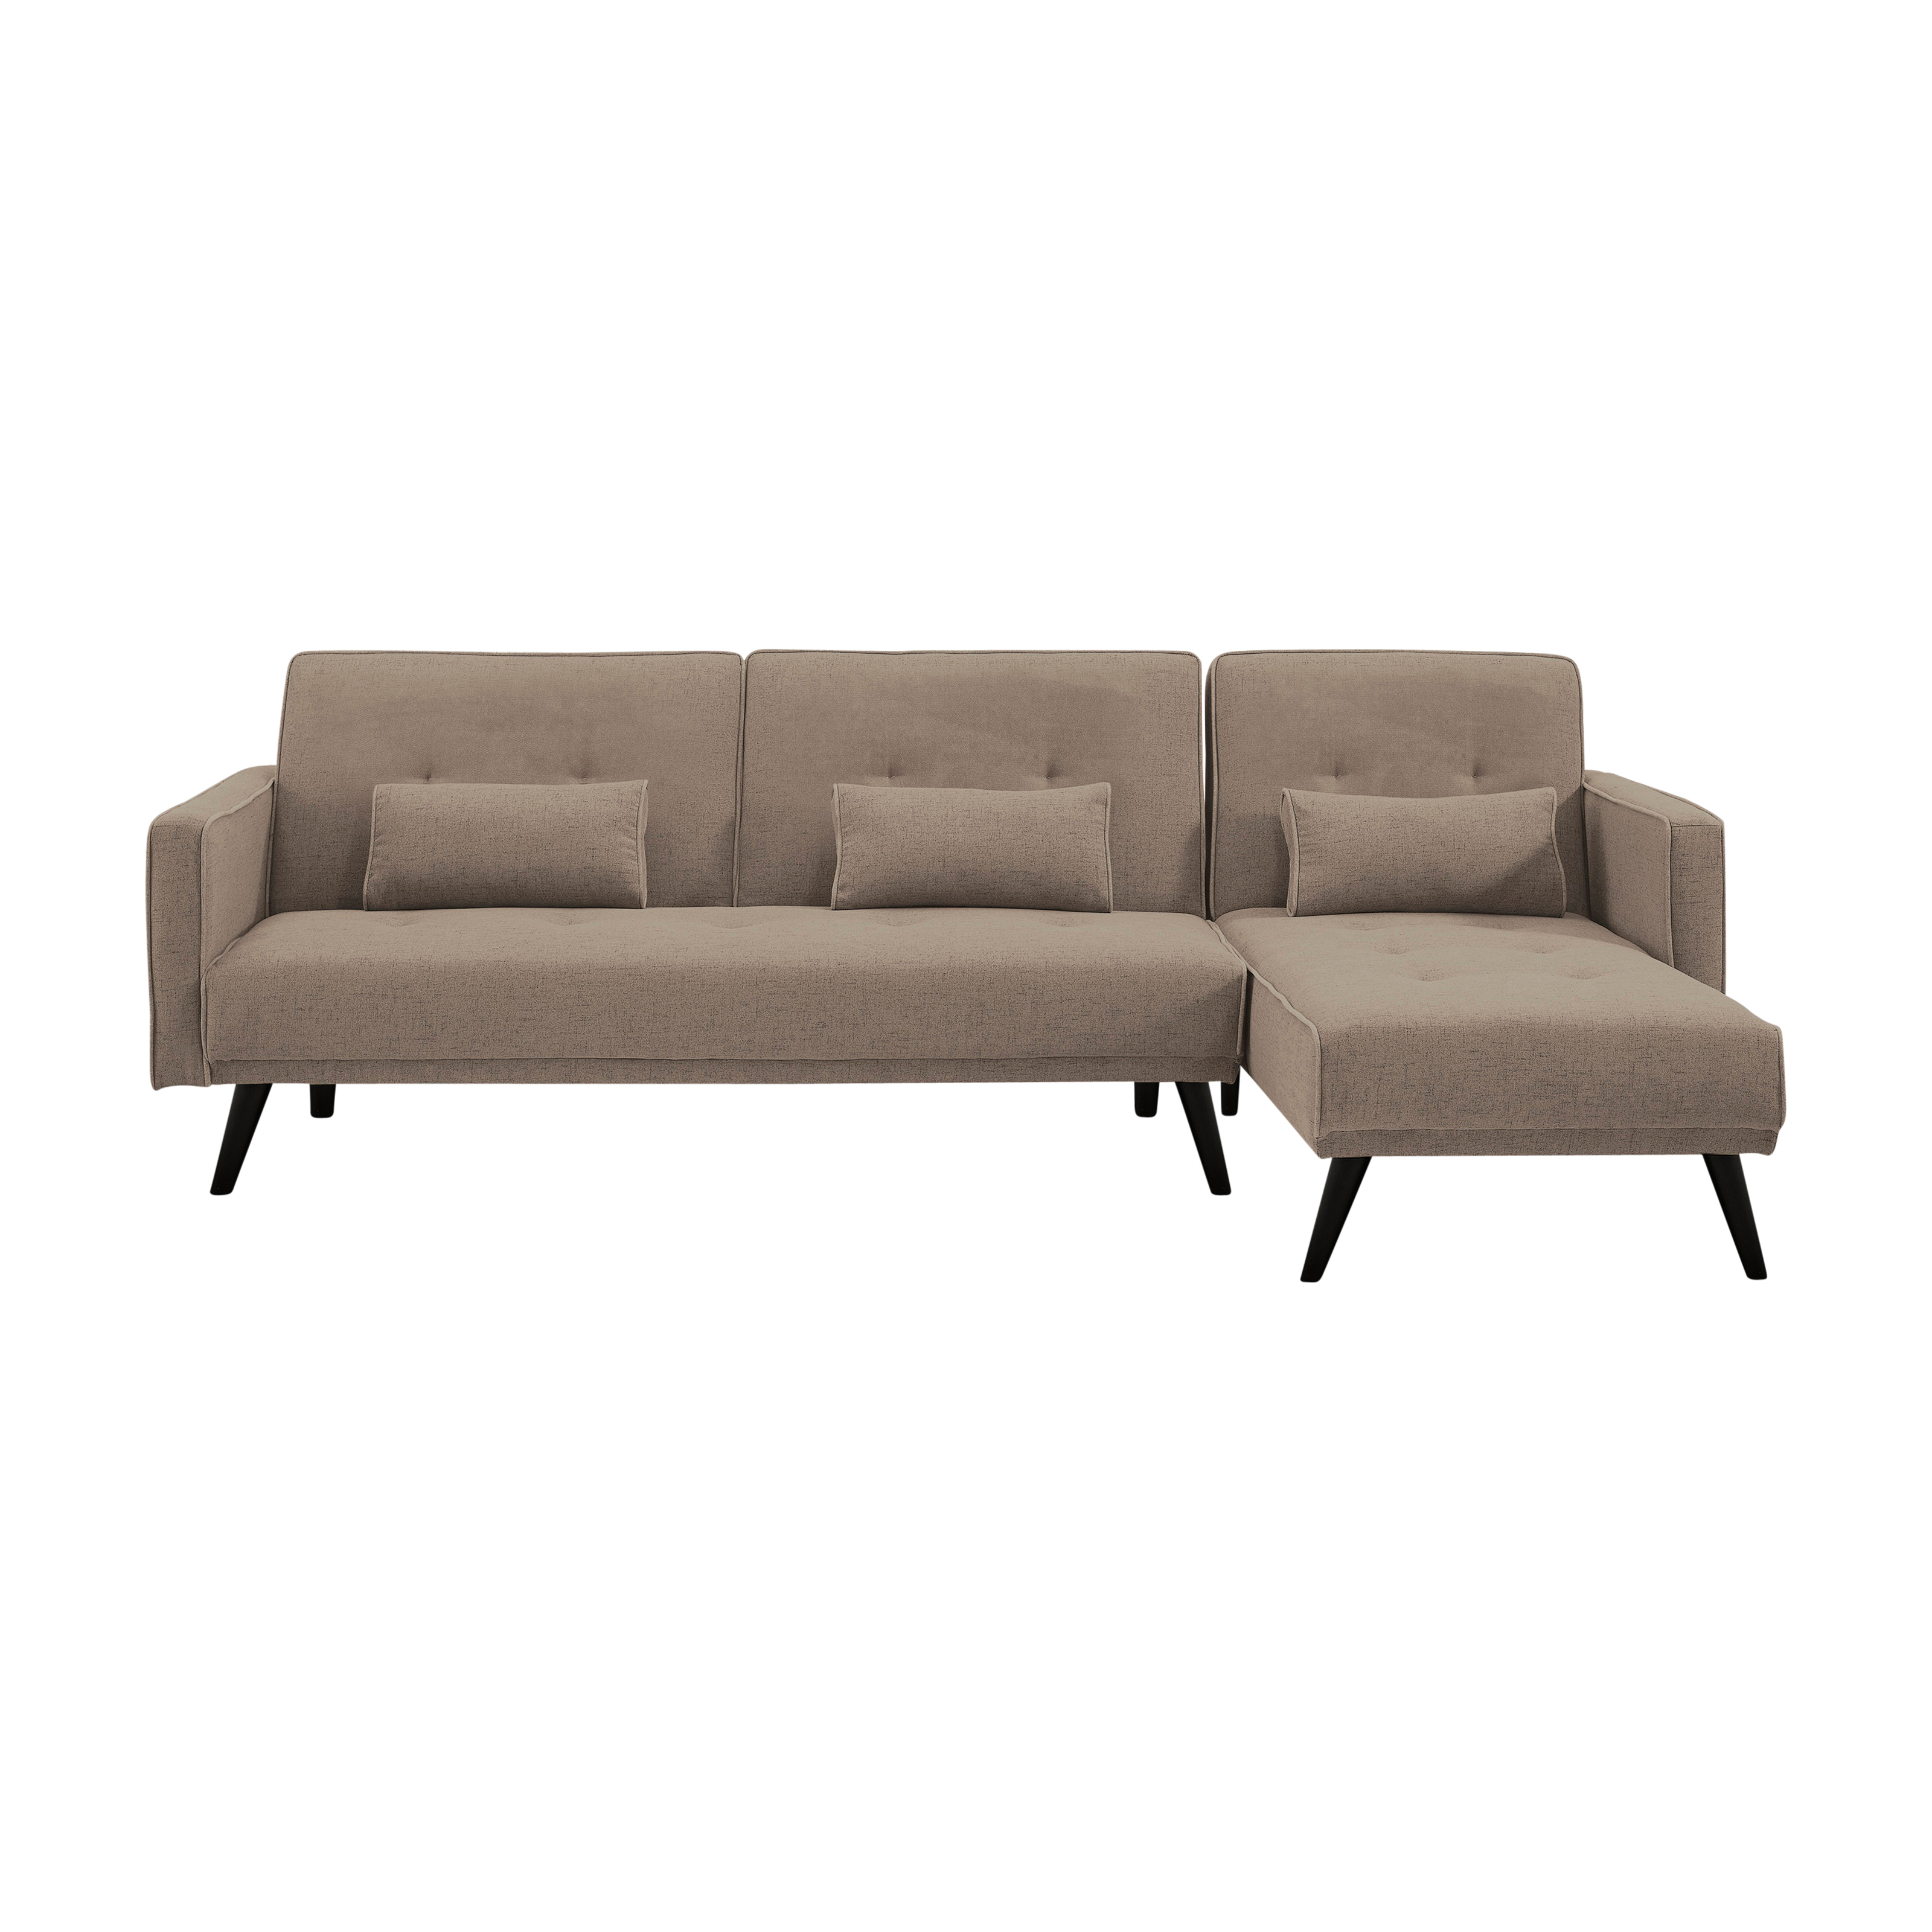 Sealy Jenna Sectional Convertible Sofa